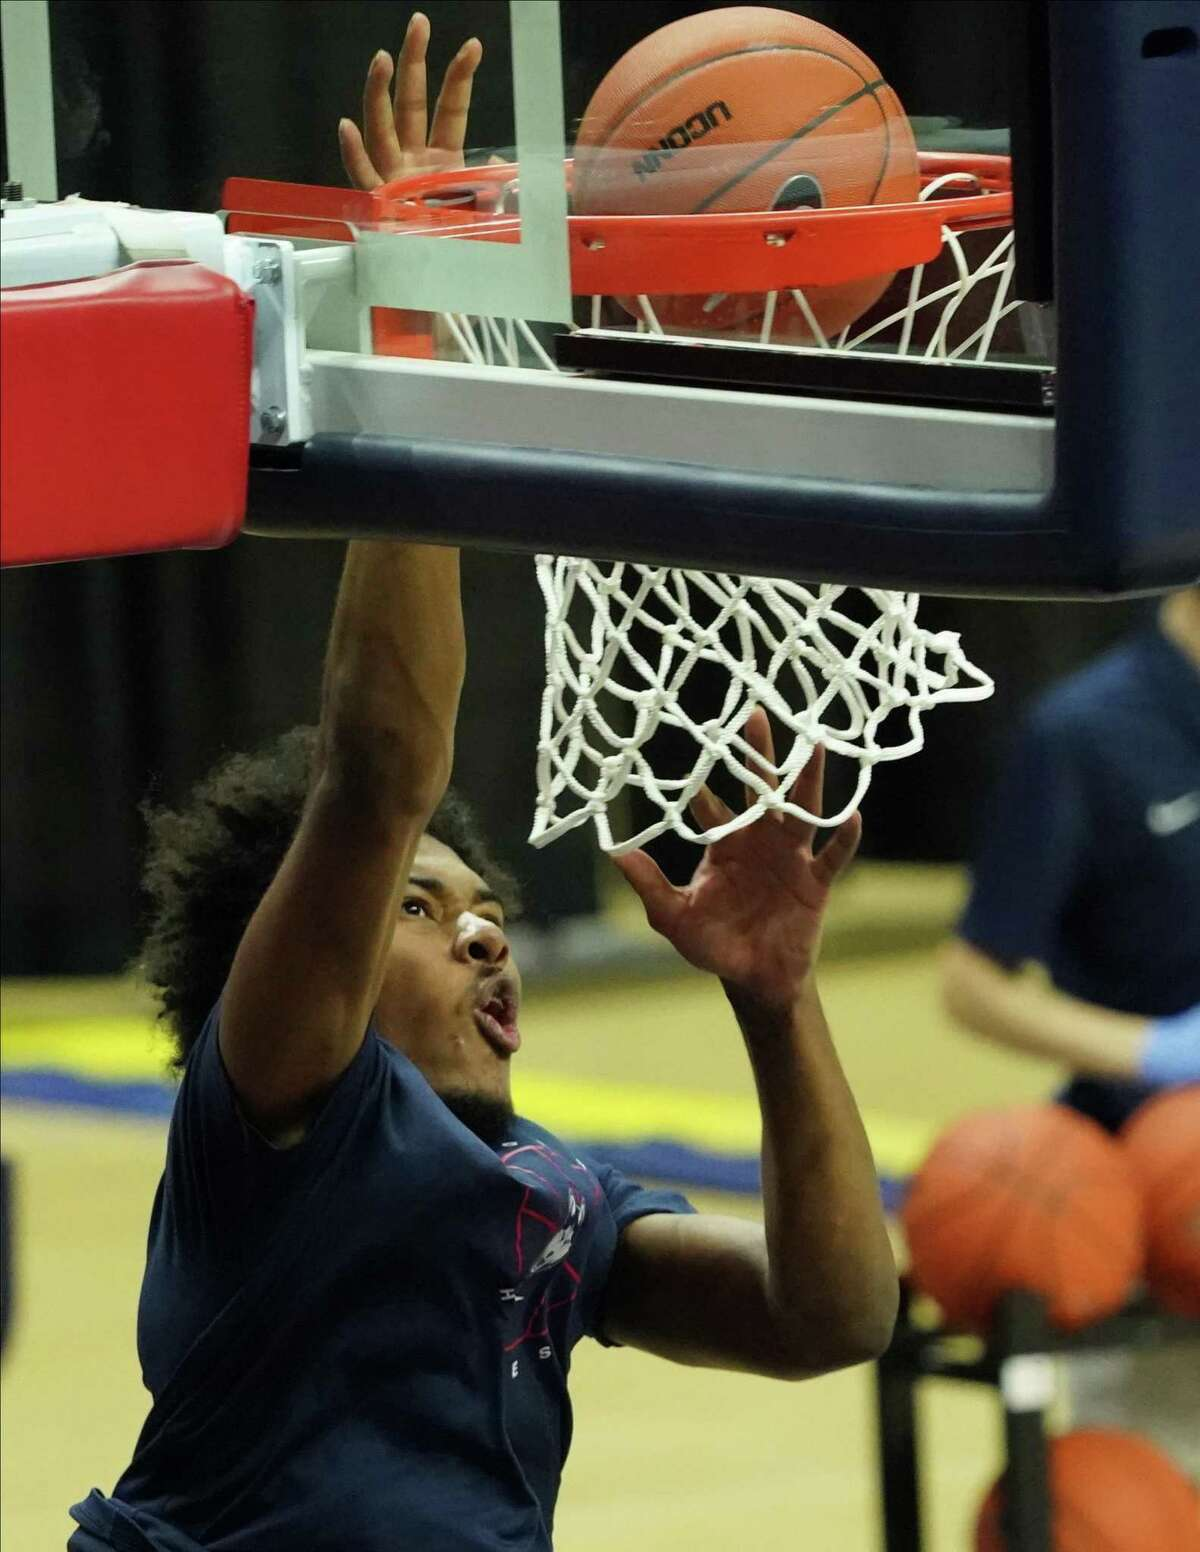 Nov 25, 2020; Storrs, CT, USA; Connecticut Huskies forward Richie Springs (13) warms up before a game against the Central Connecticut State Blue Devils at Gampel Pavilion. Mandatory Credit: David Butler II-USA TODAY Sports